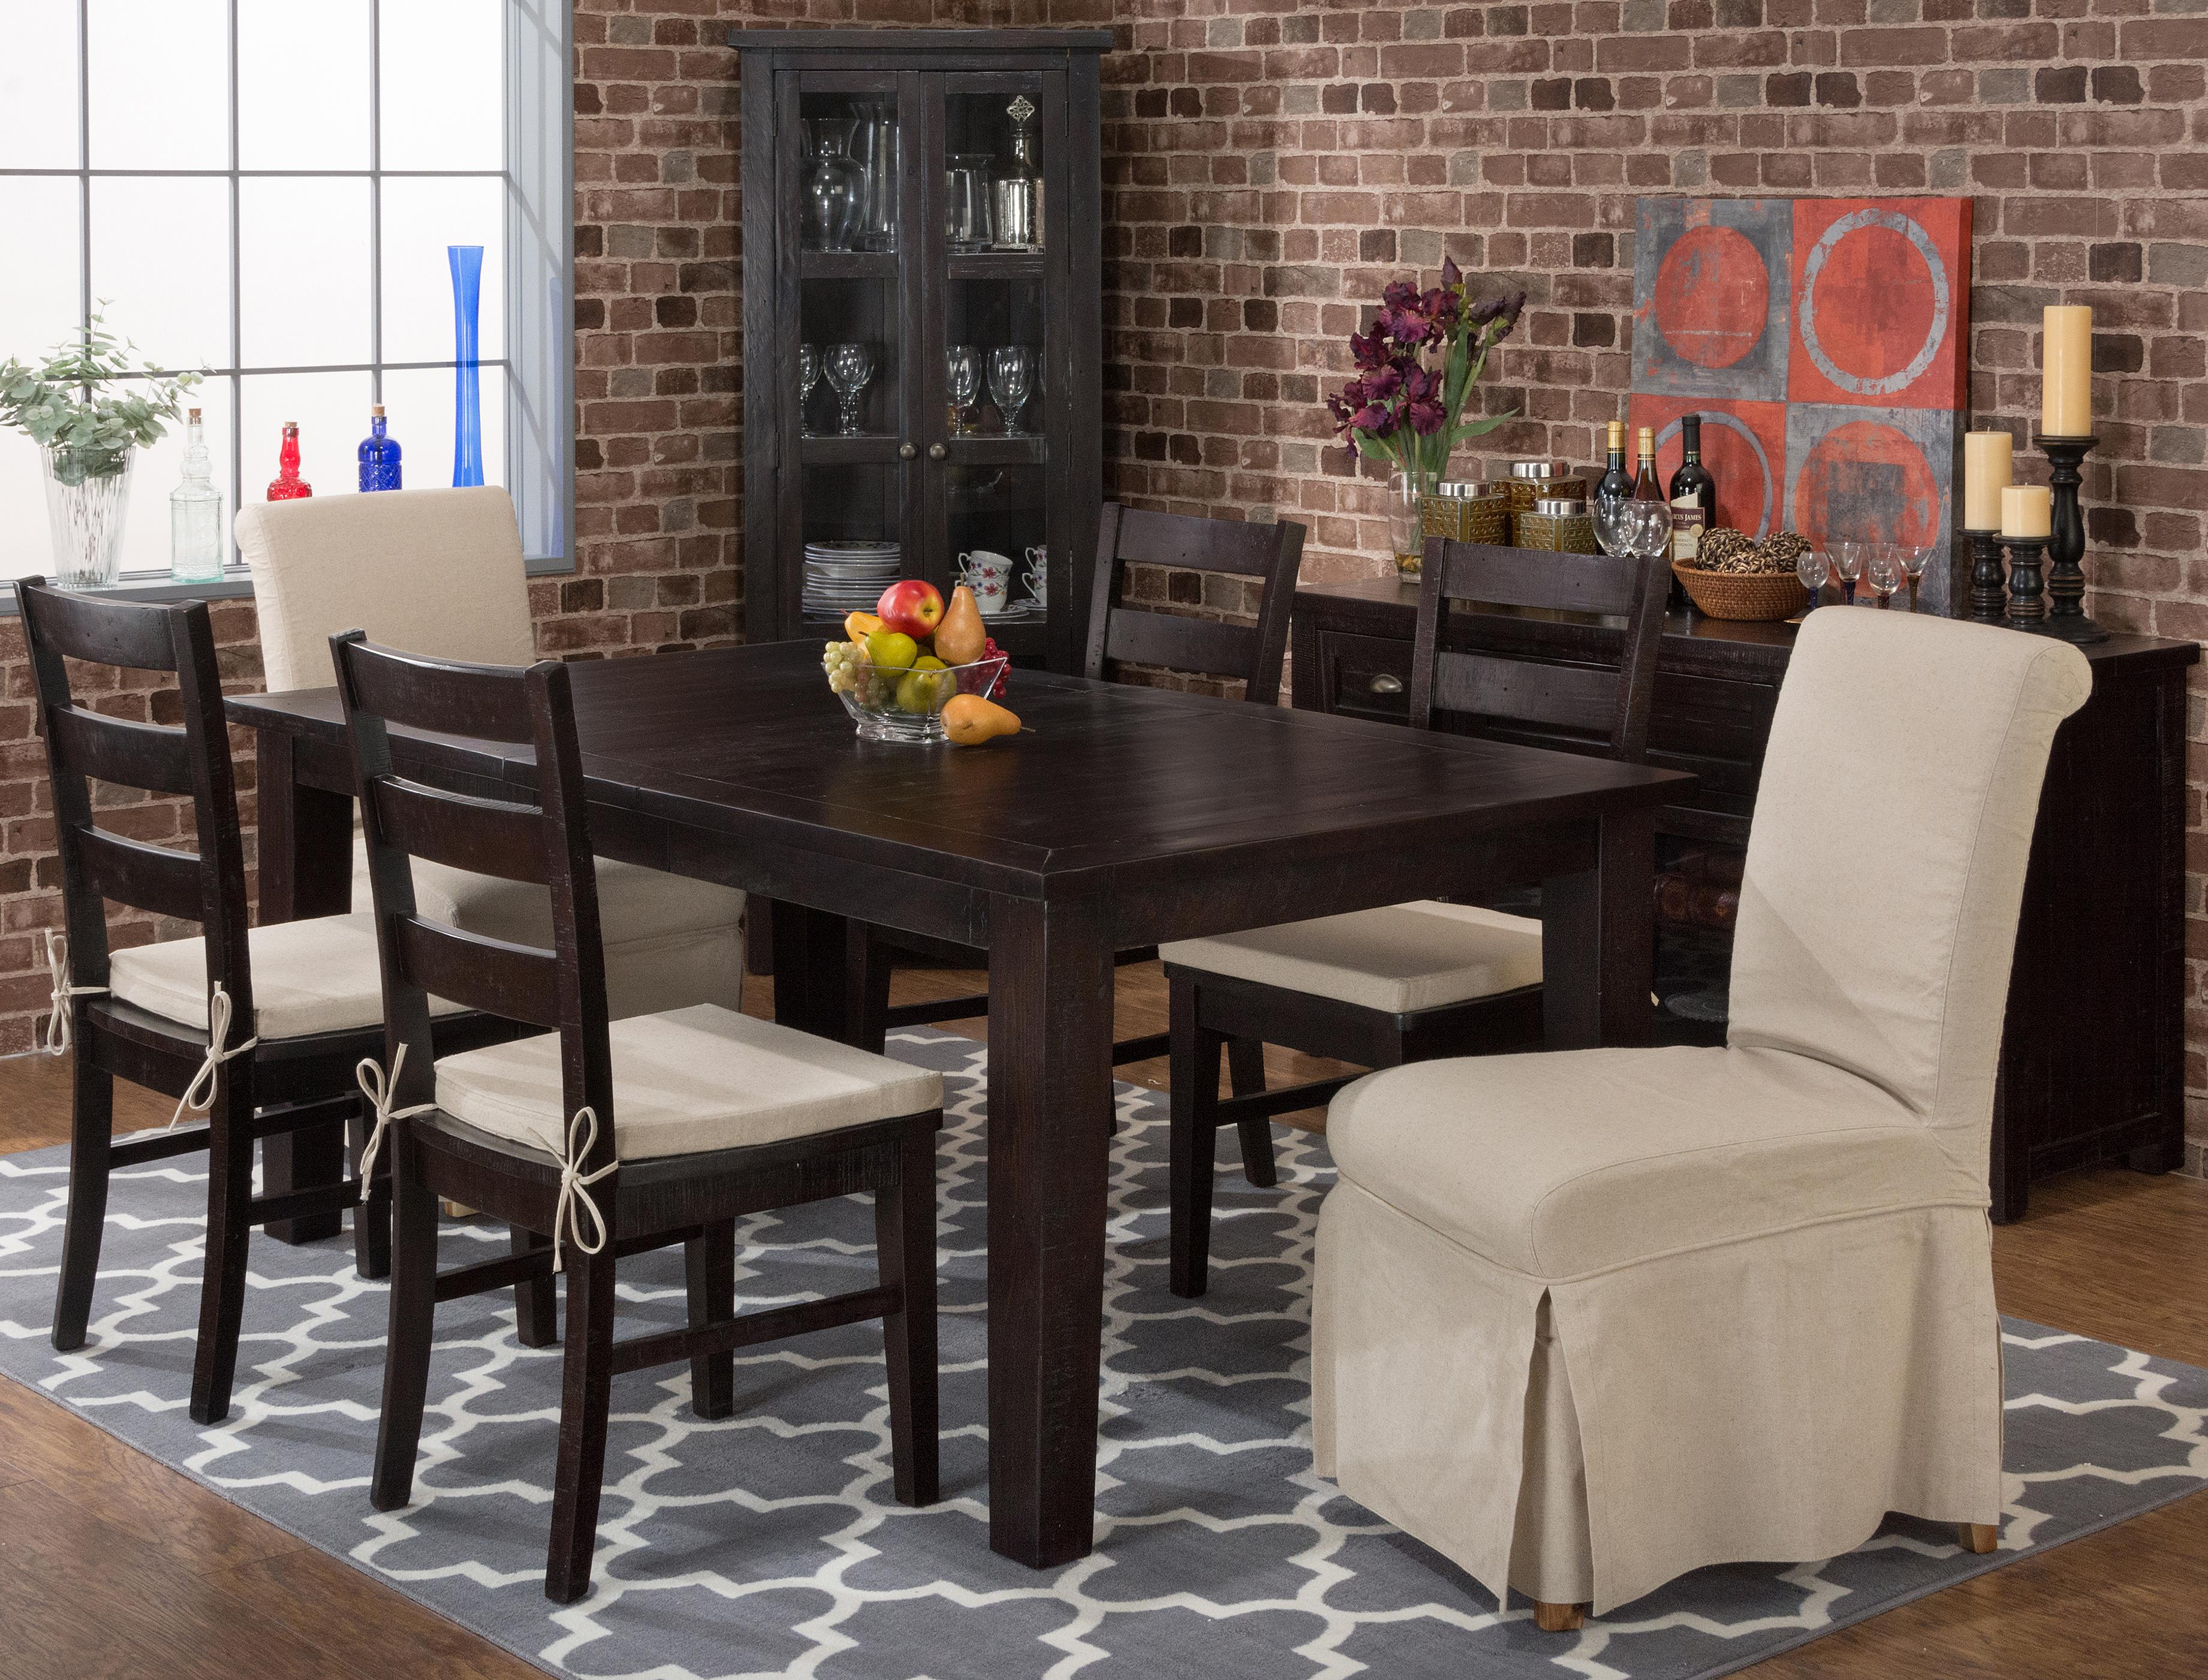 Delightful Hillside 5PC Pedestal Dining Table U0026 Chair Set | Rotmans | Dining 5 Piece  Set Worcester, Boston, MA, Providence, RI, And New England